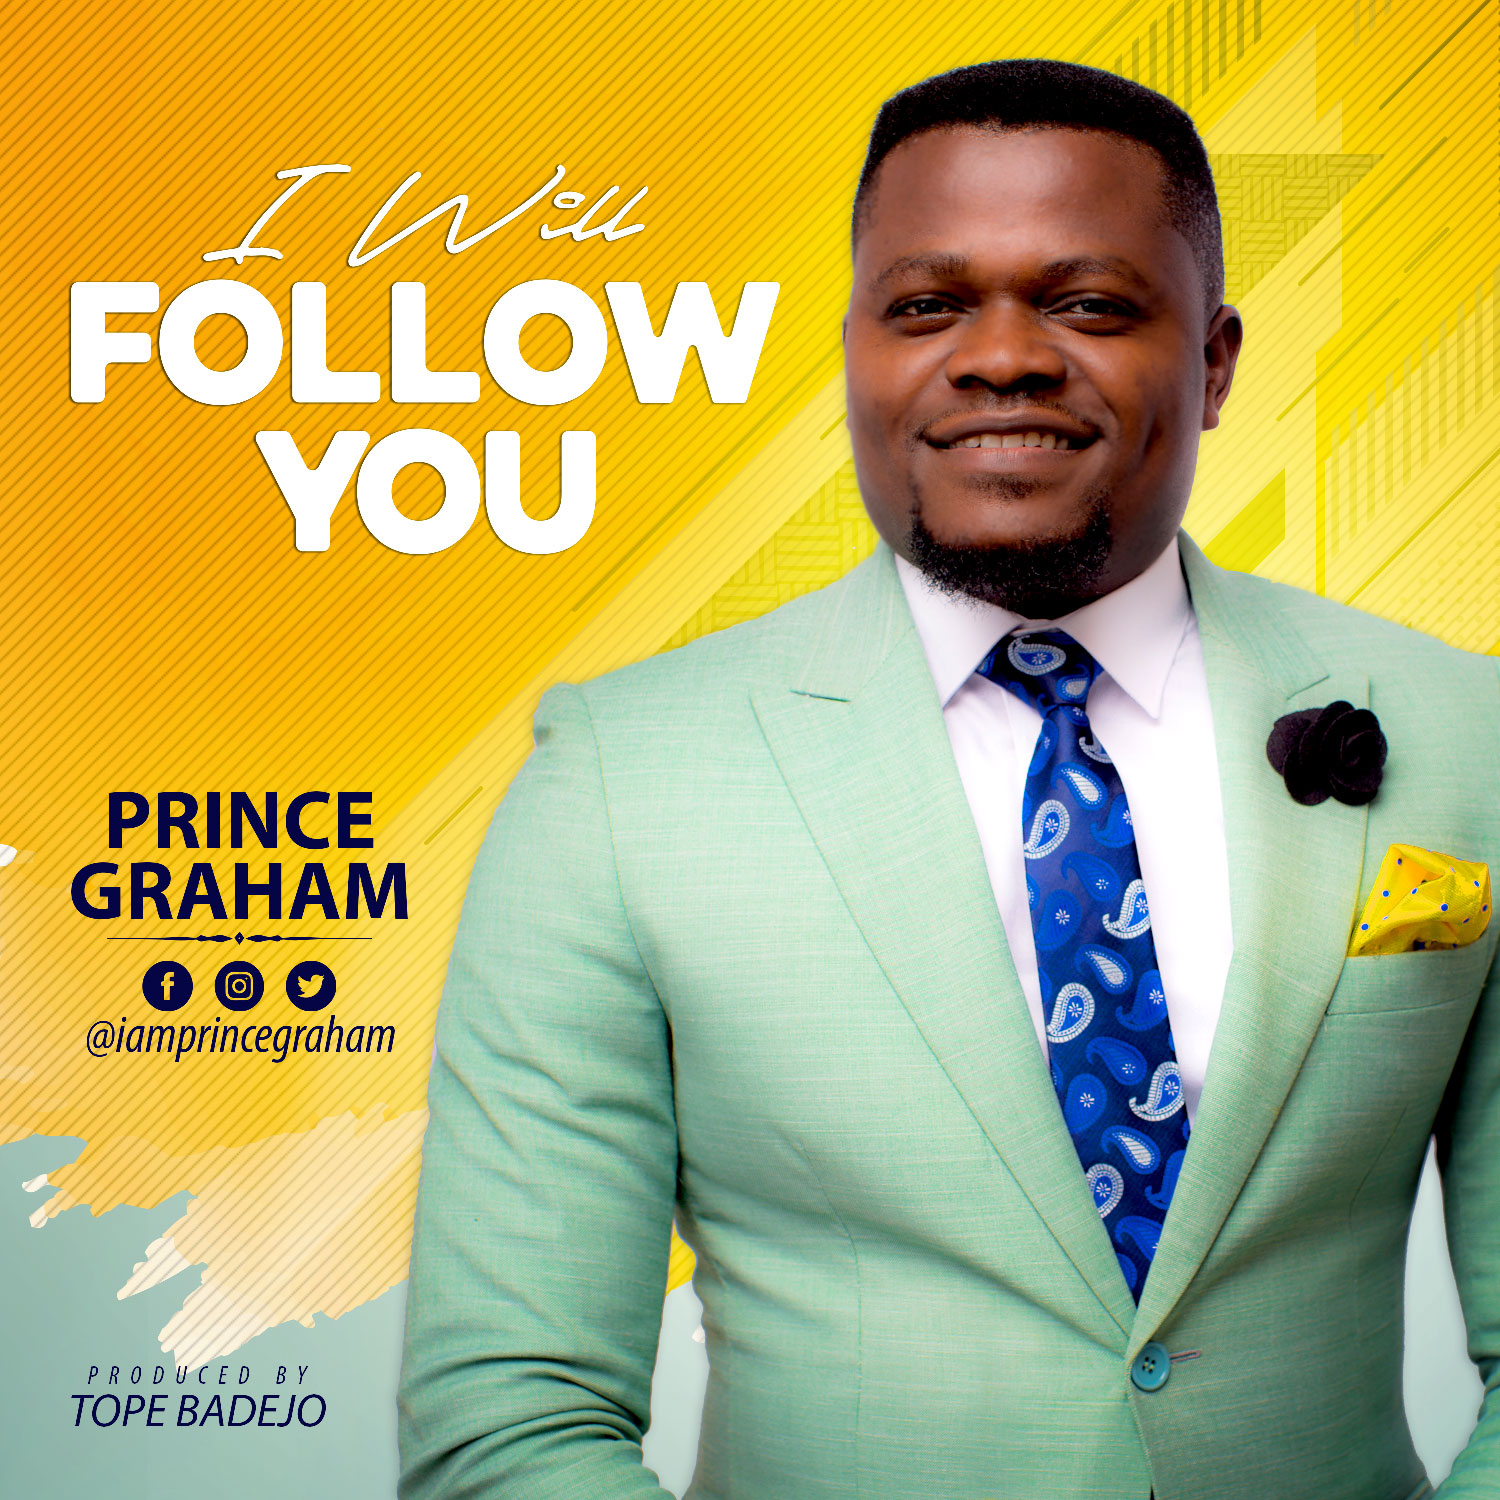 Music: I Will Follow You ~ Prince Graham [@iamprincegraham]